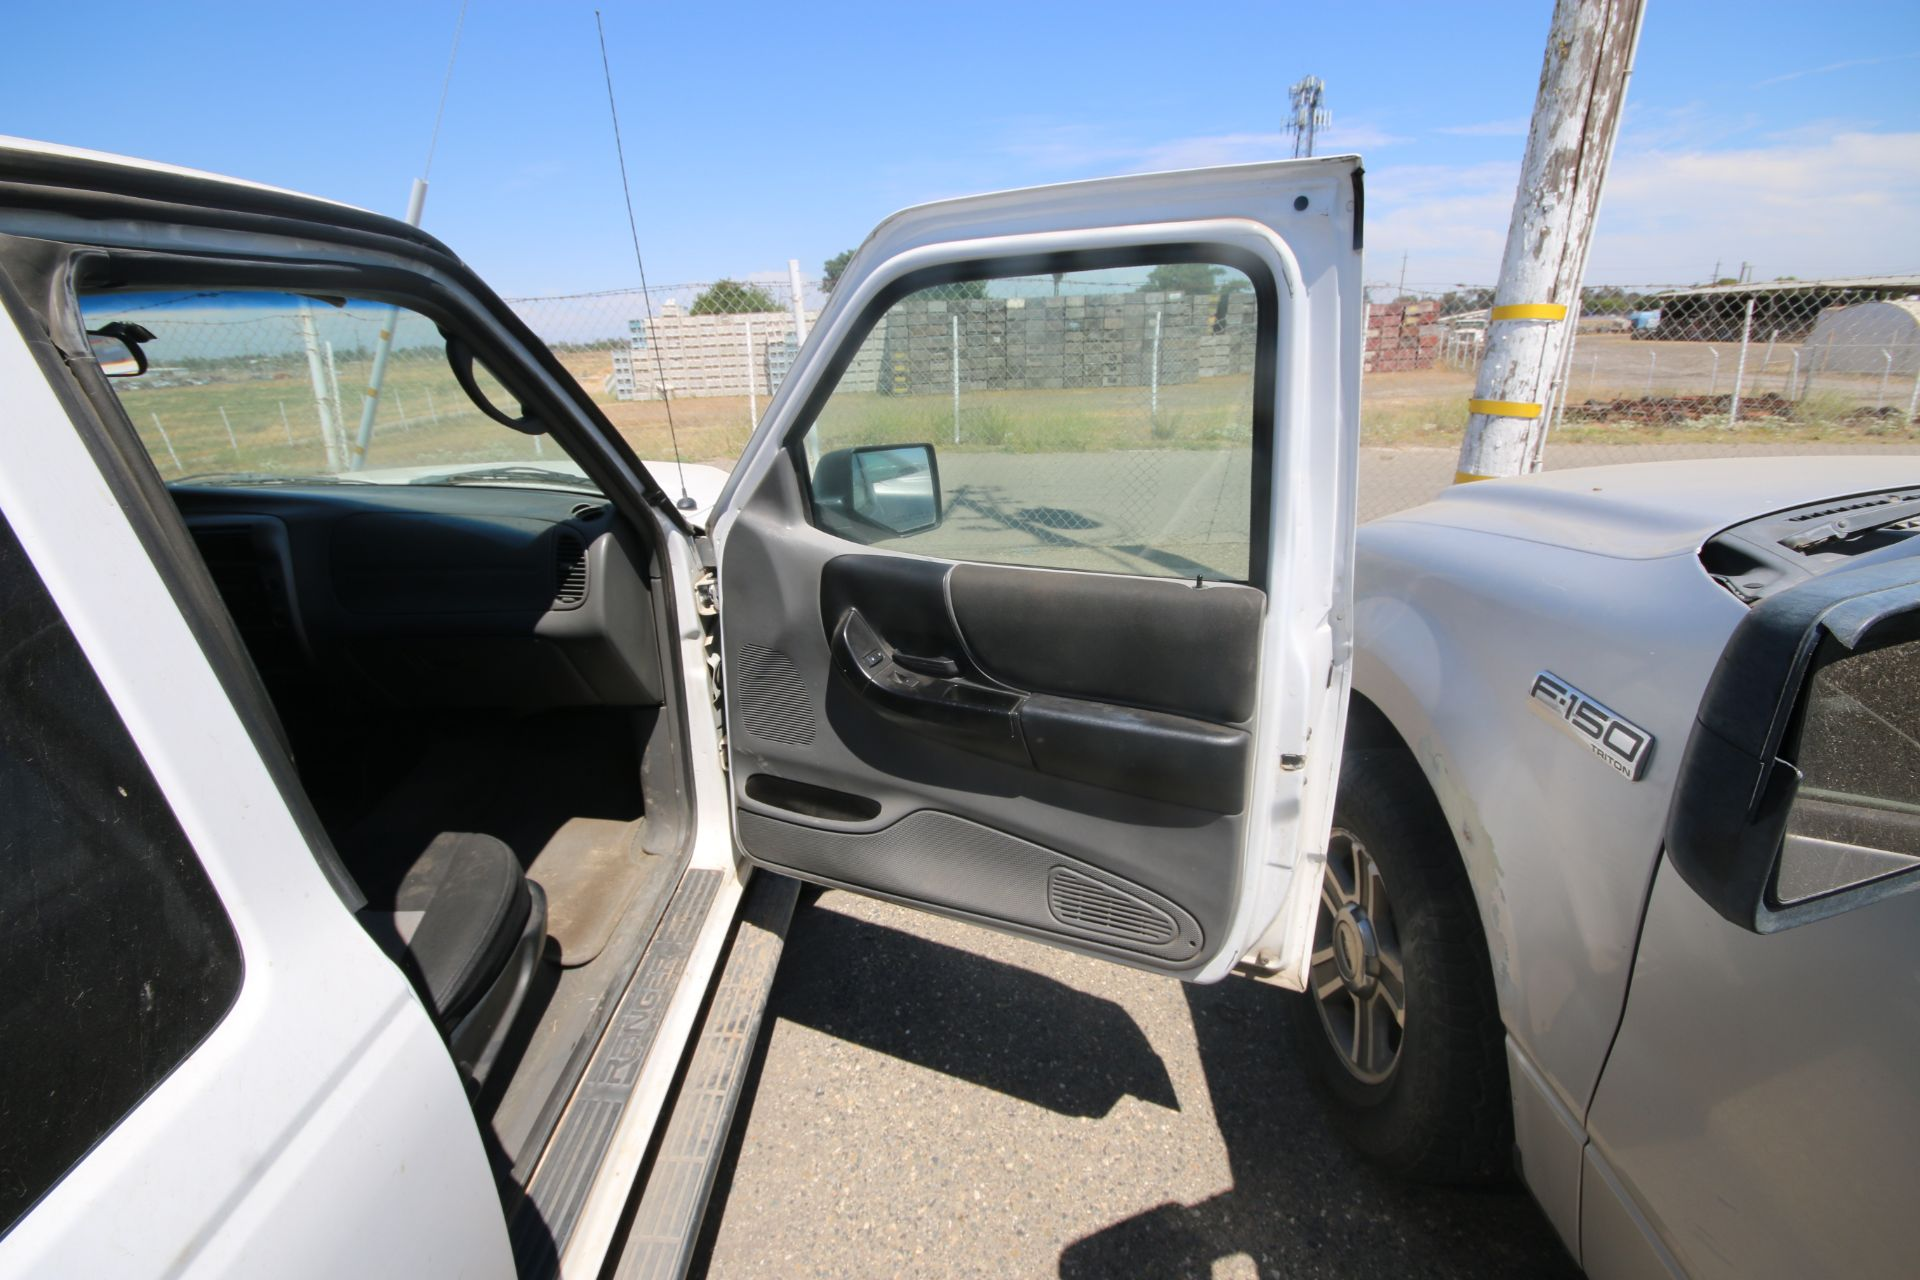 2011 White Ford Ranger Pick Up Truck, VIN #: 1FTLR4FE8BPA37482, with 160,443 Miles, Started Up as of - Image 12 of 24